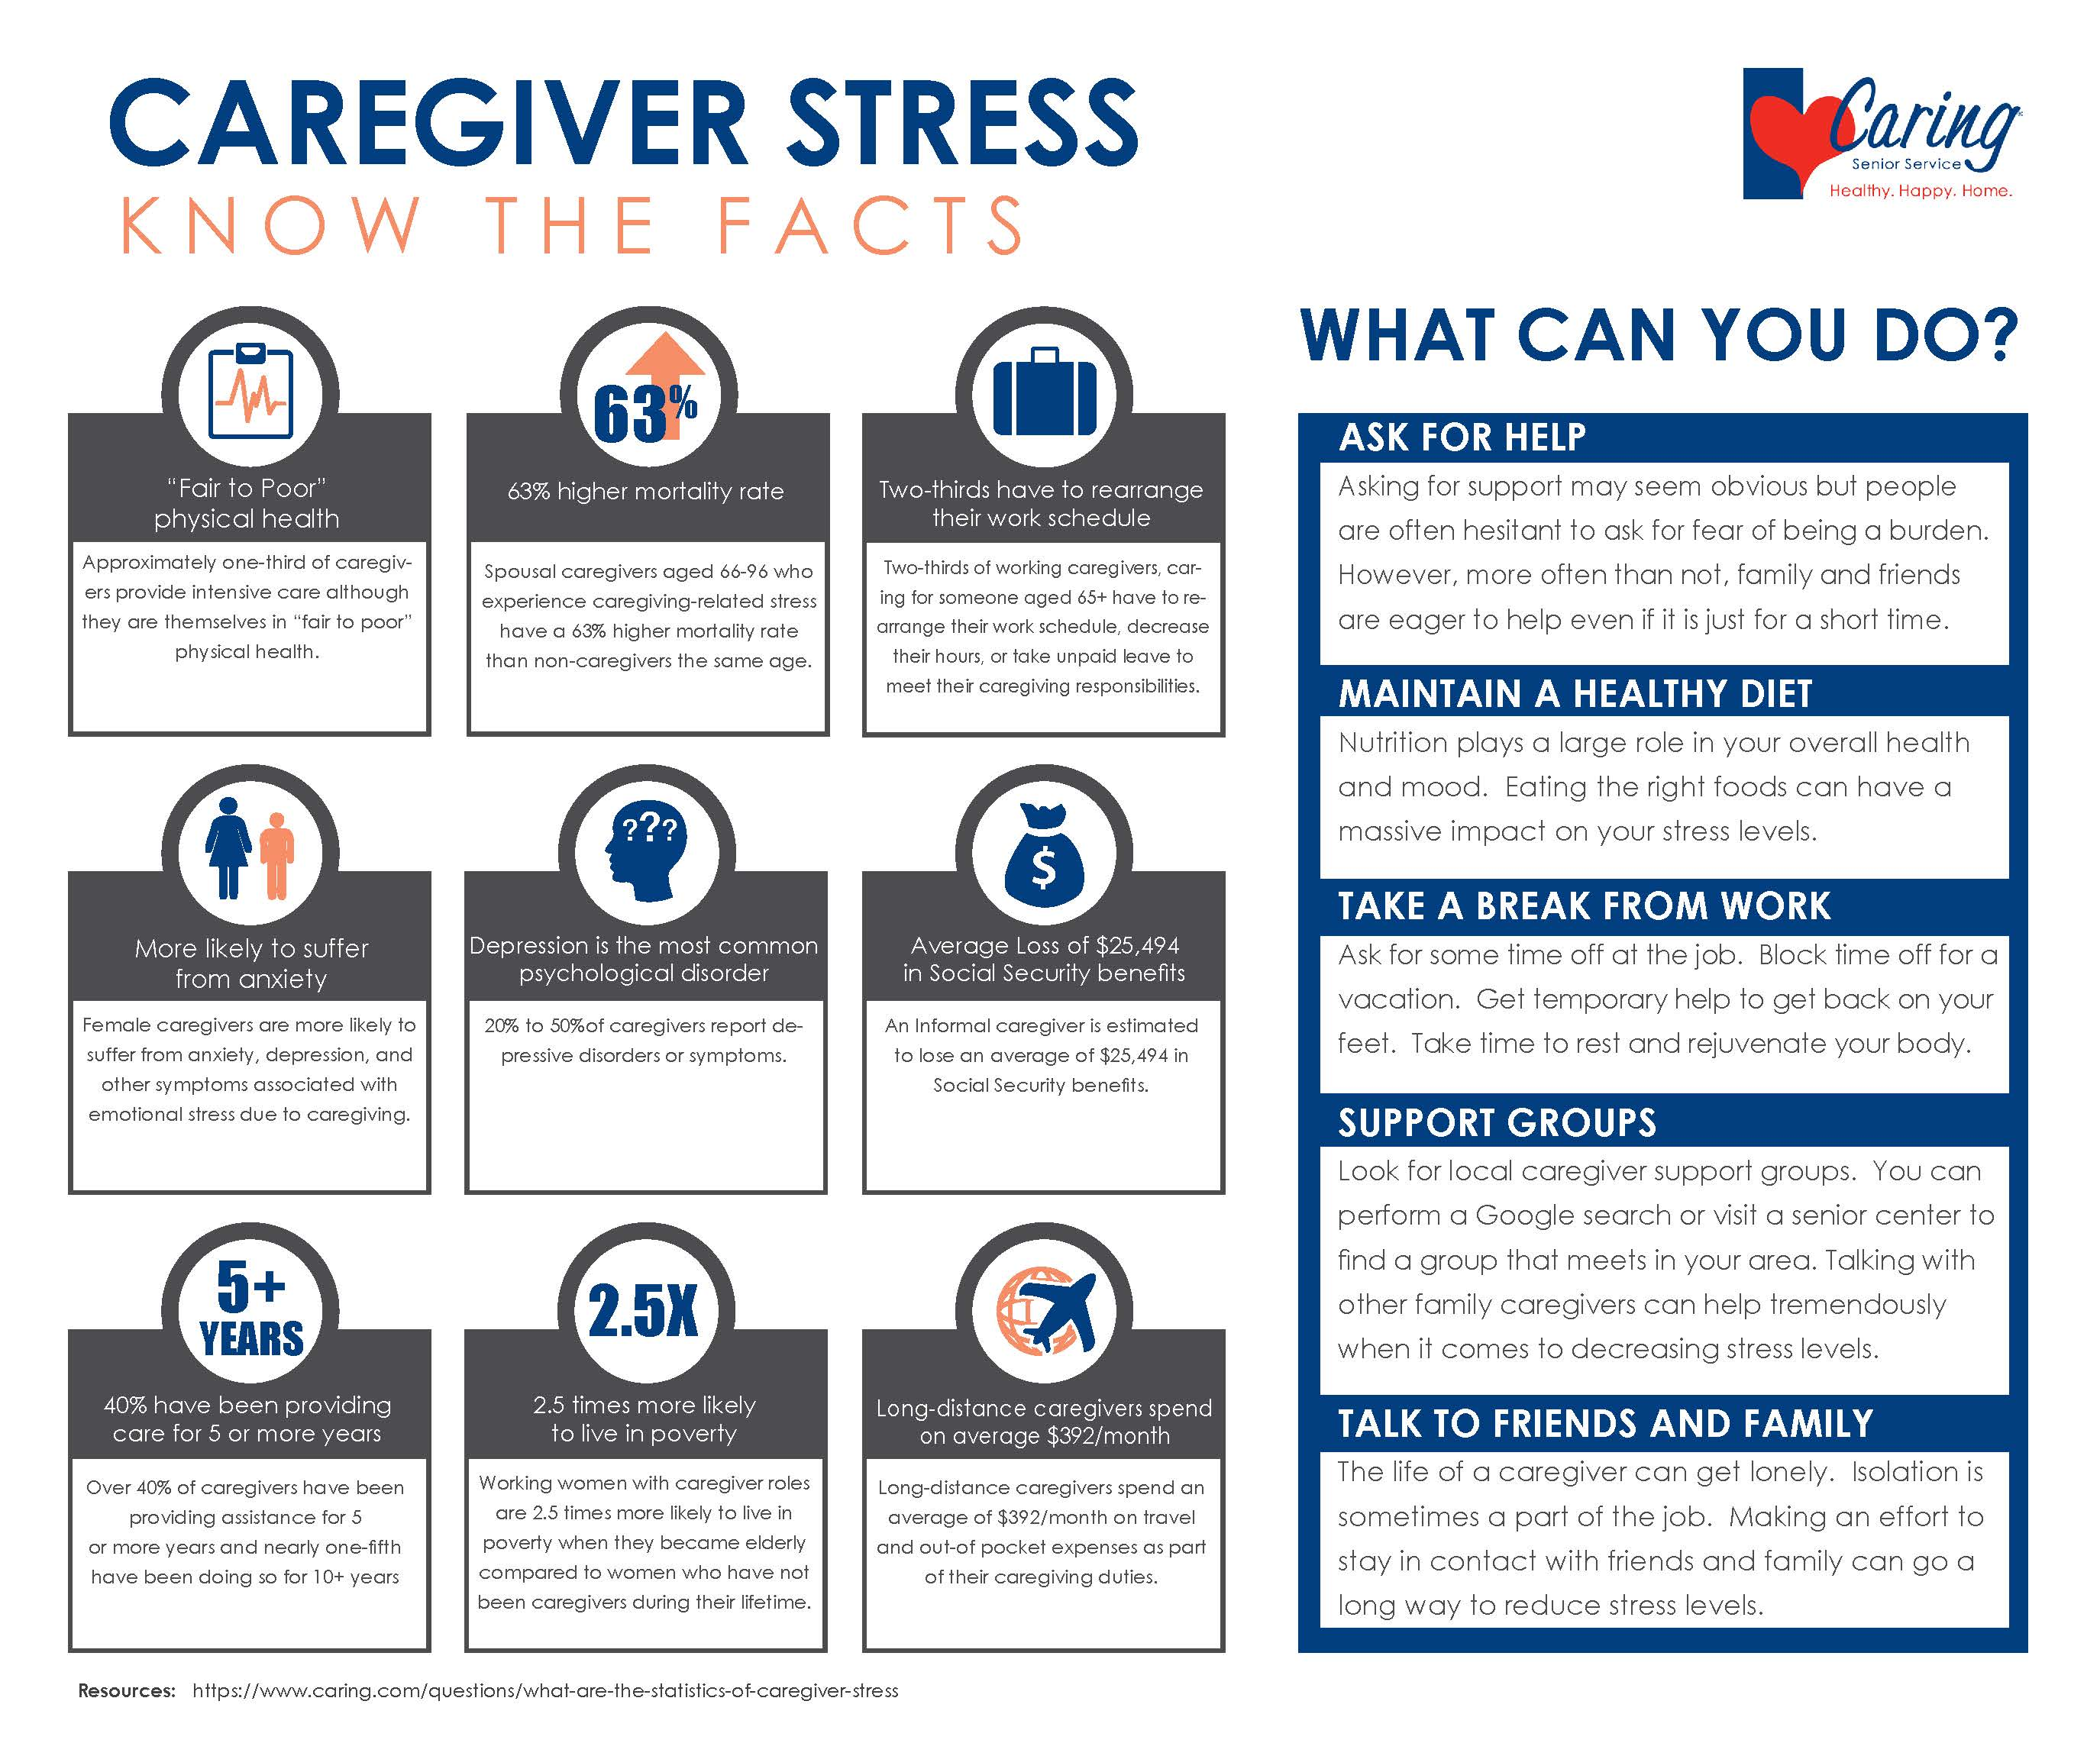 Caregiver_Stress_Fact_Sheet.jpg